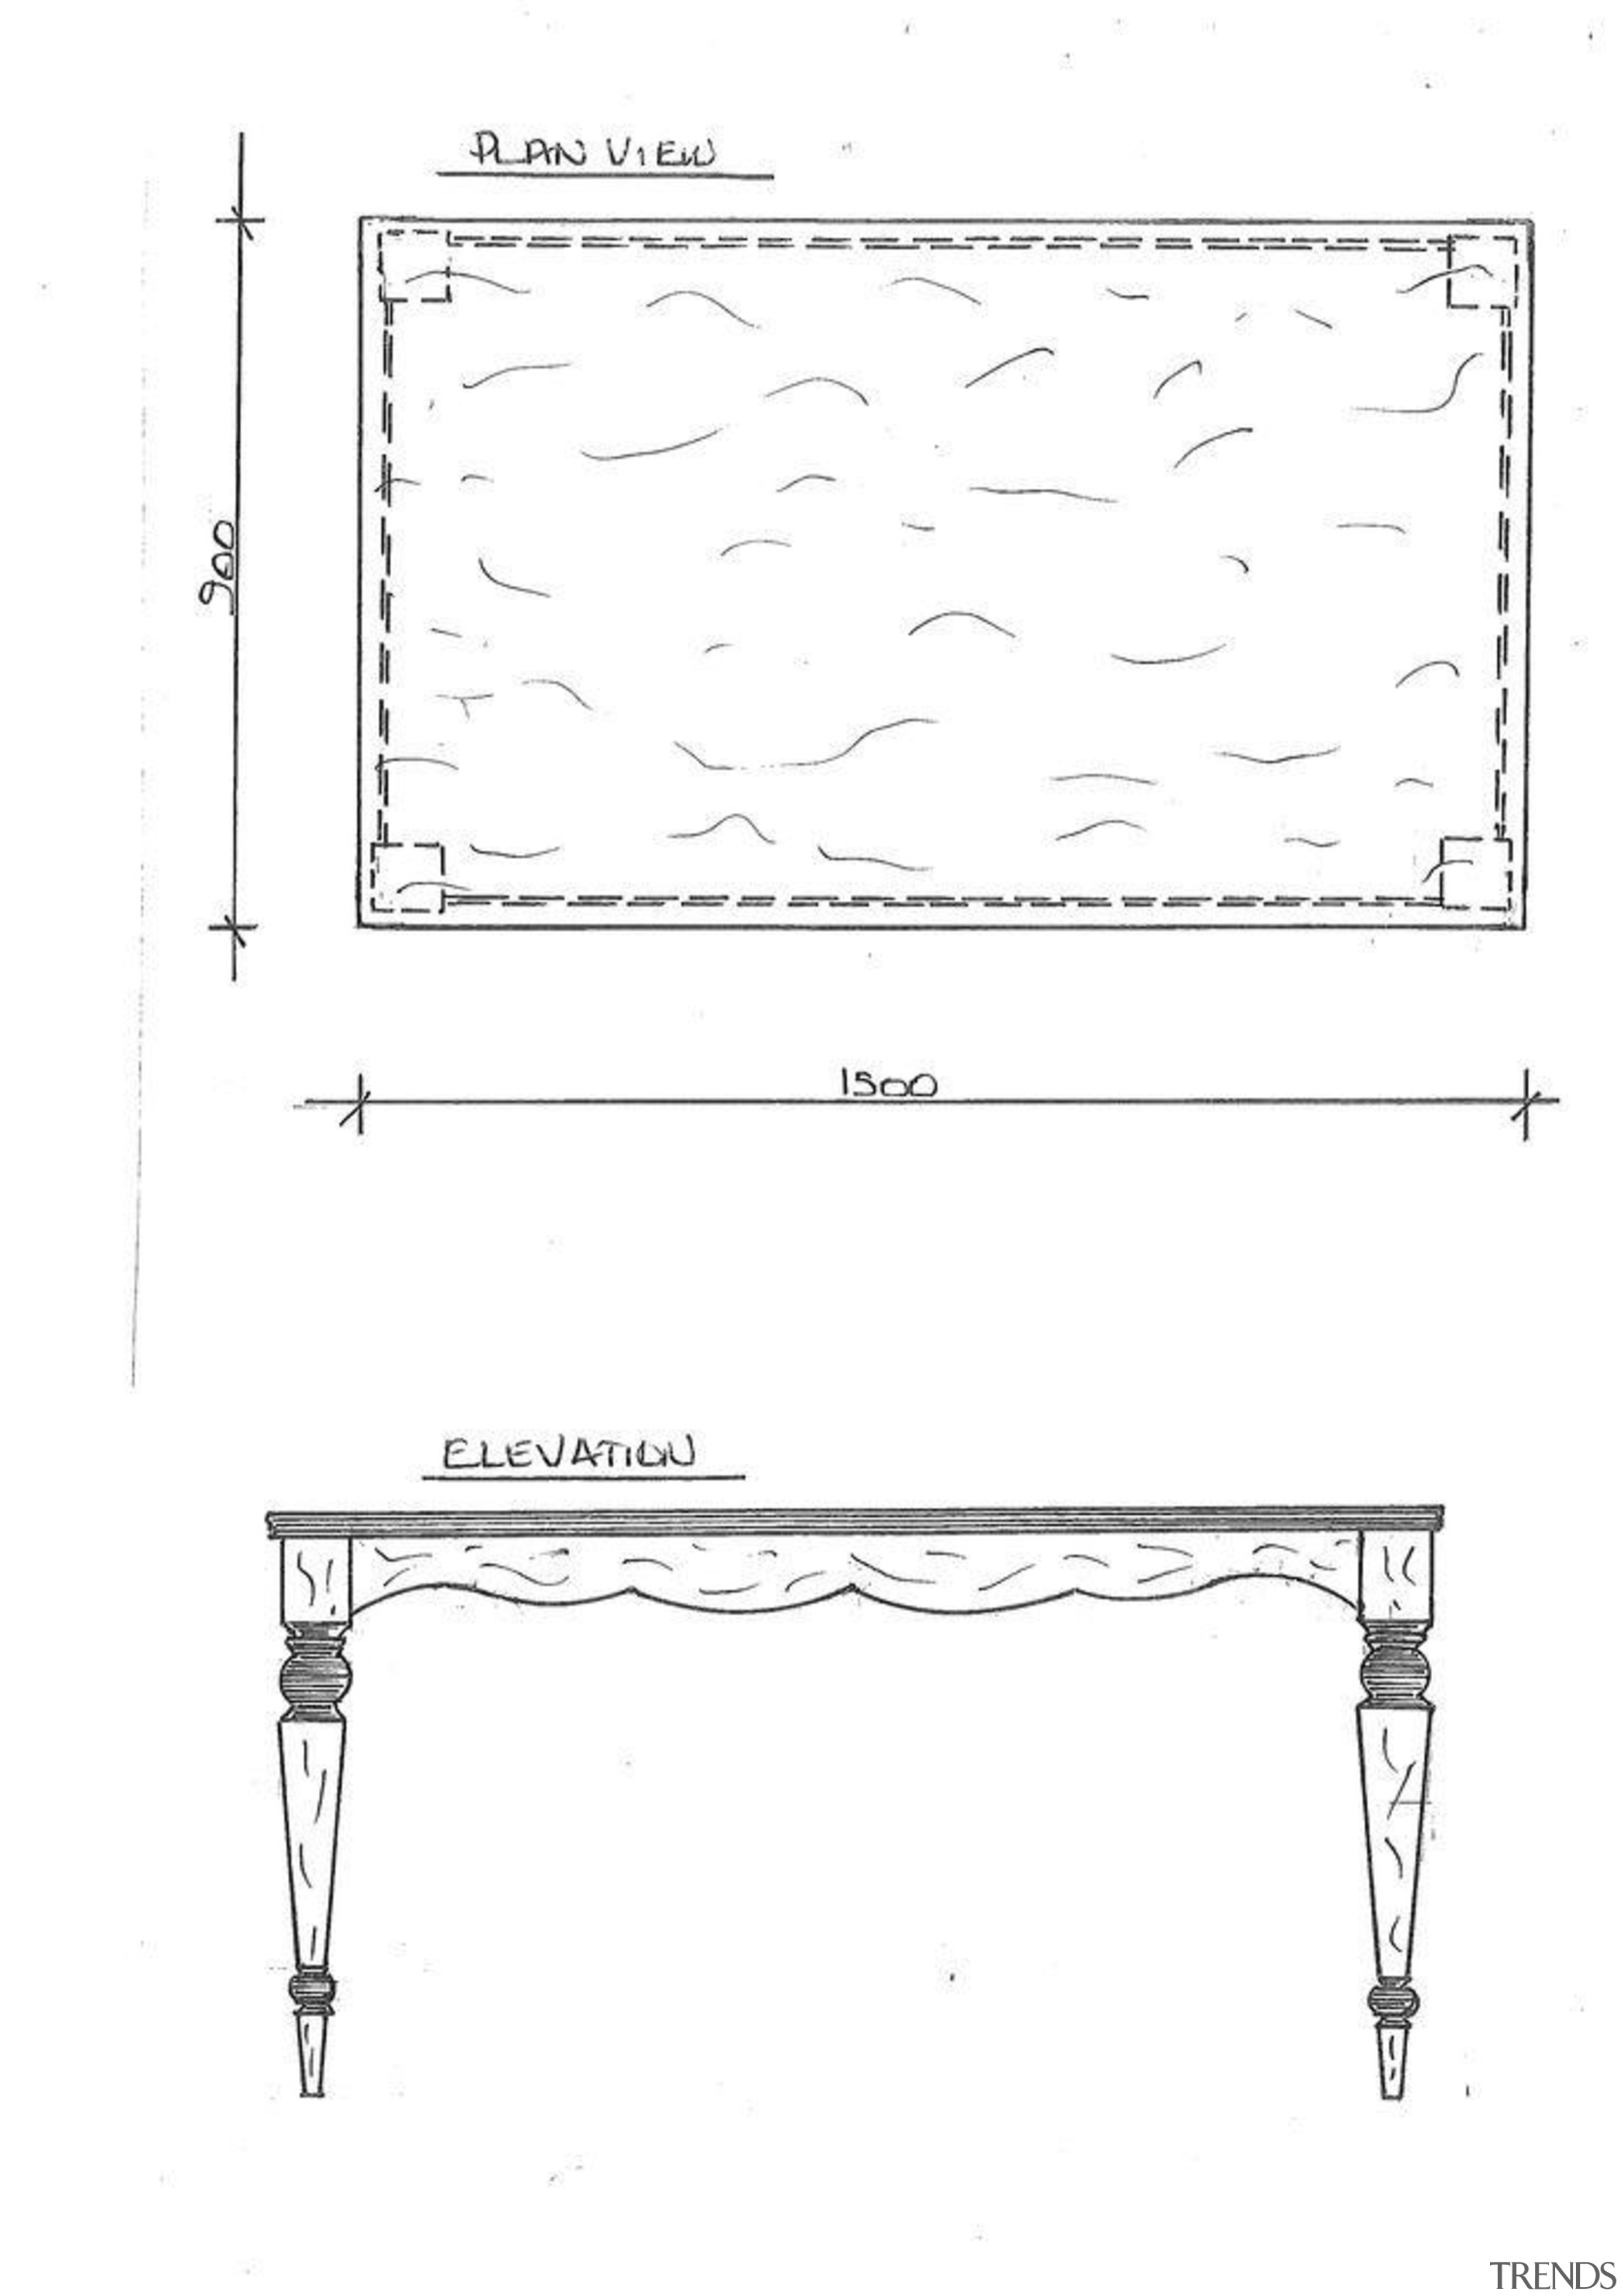 by Mary Hogben - by Mary Hogben - angle, area, black and white, design, diagram, drawing, font, furniture, line, line art, product, product design, rectangle, structure, table, text, white